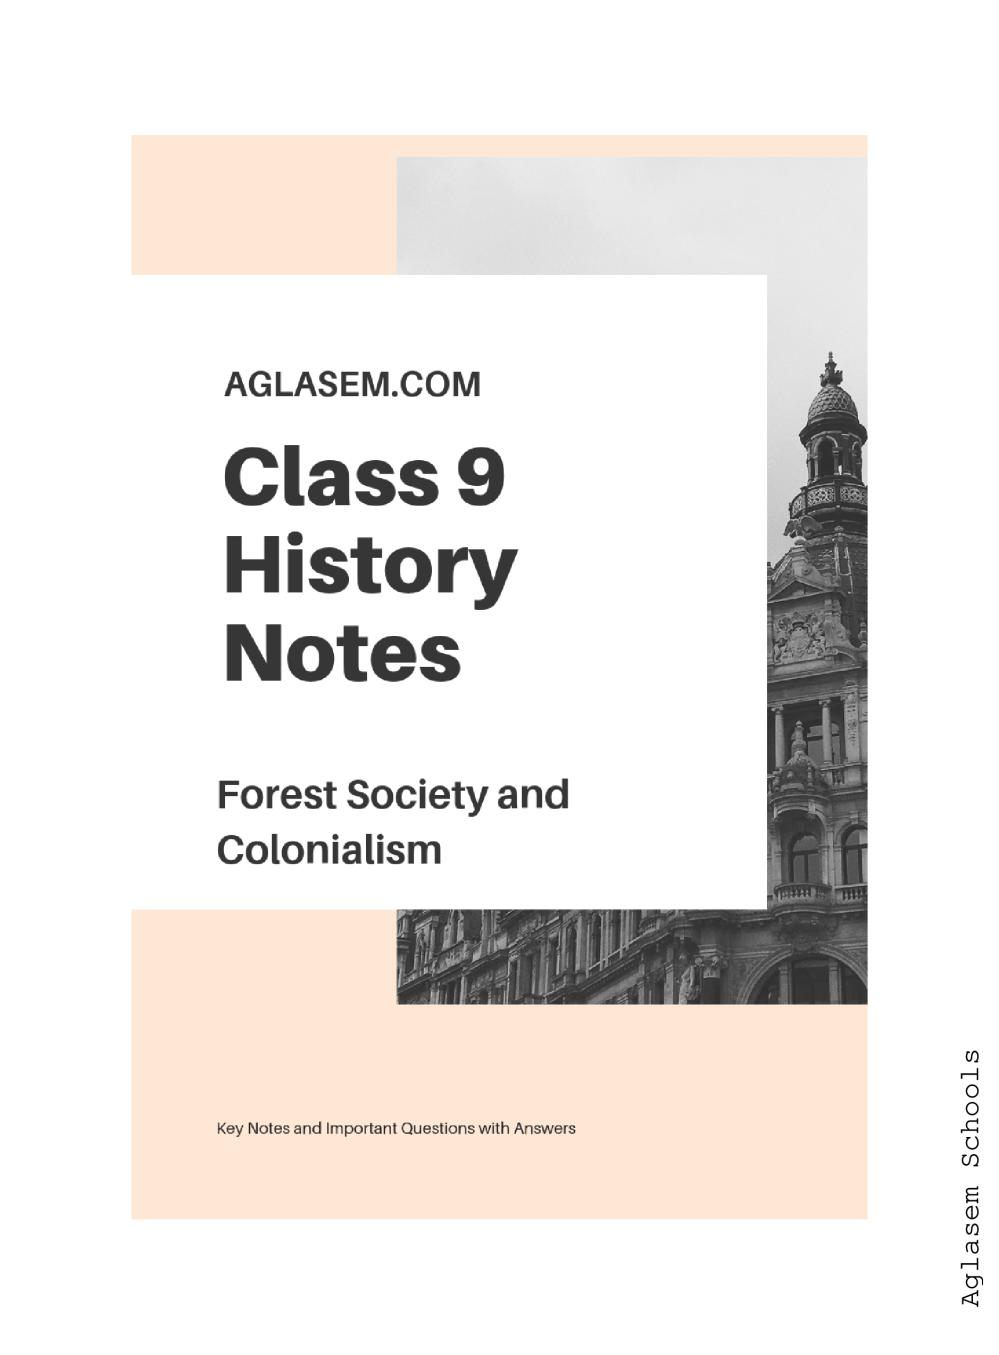 Class 9 Social Science (History) Forest Society and Colonialism Notes, Important Questions & Practice Paper